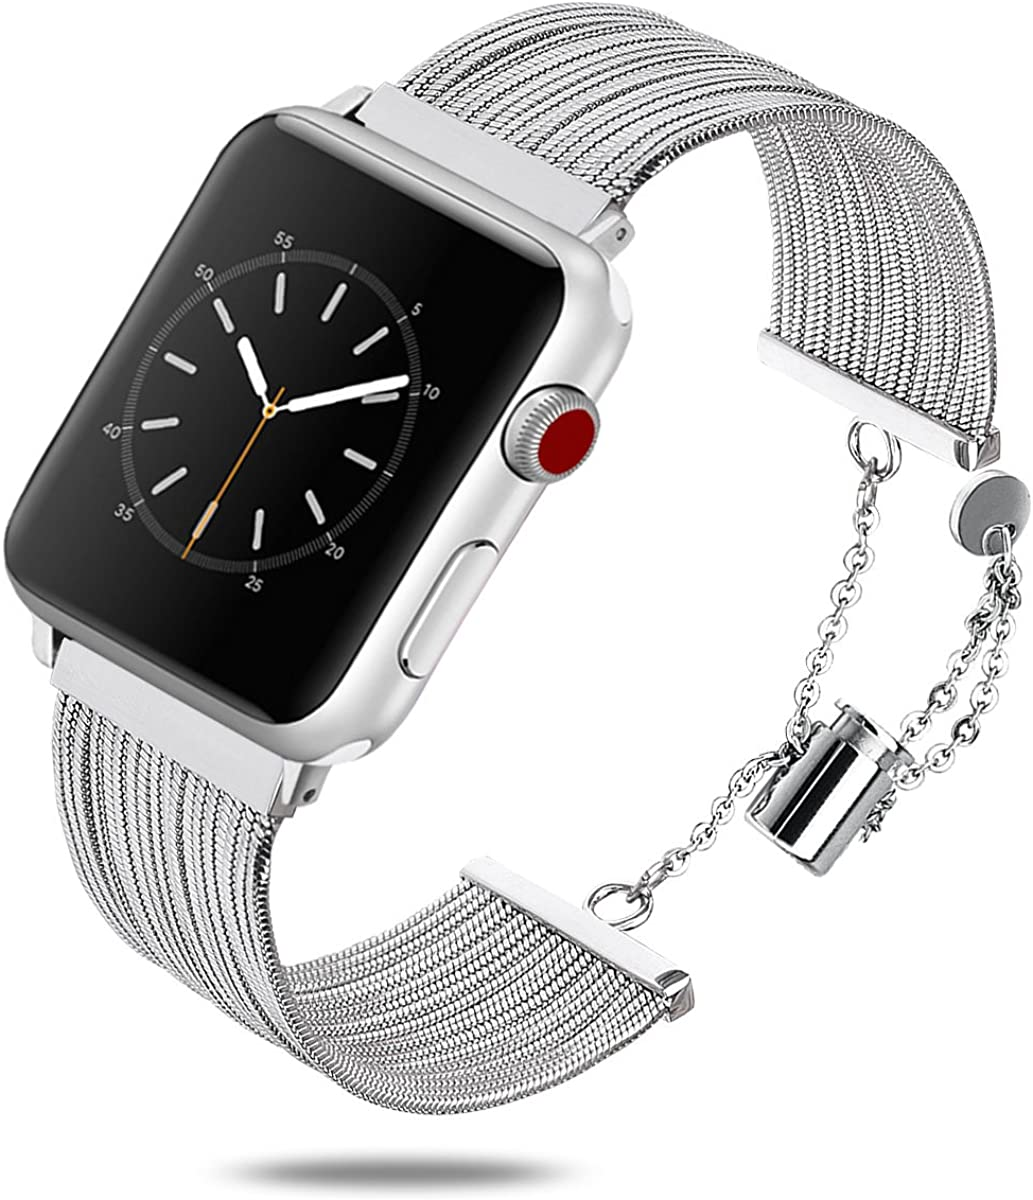 Compatible with Apple Watch, Band for iWatch Series 6 5 4 3 2 1 Stainless Steel Fashion Jewelry Replacement Dressy Bracelet 38mm 42mm Smart Watch Accessories